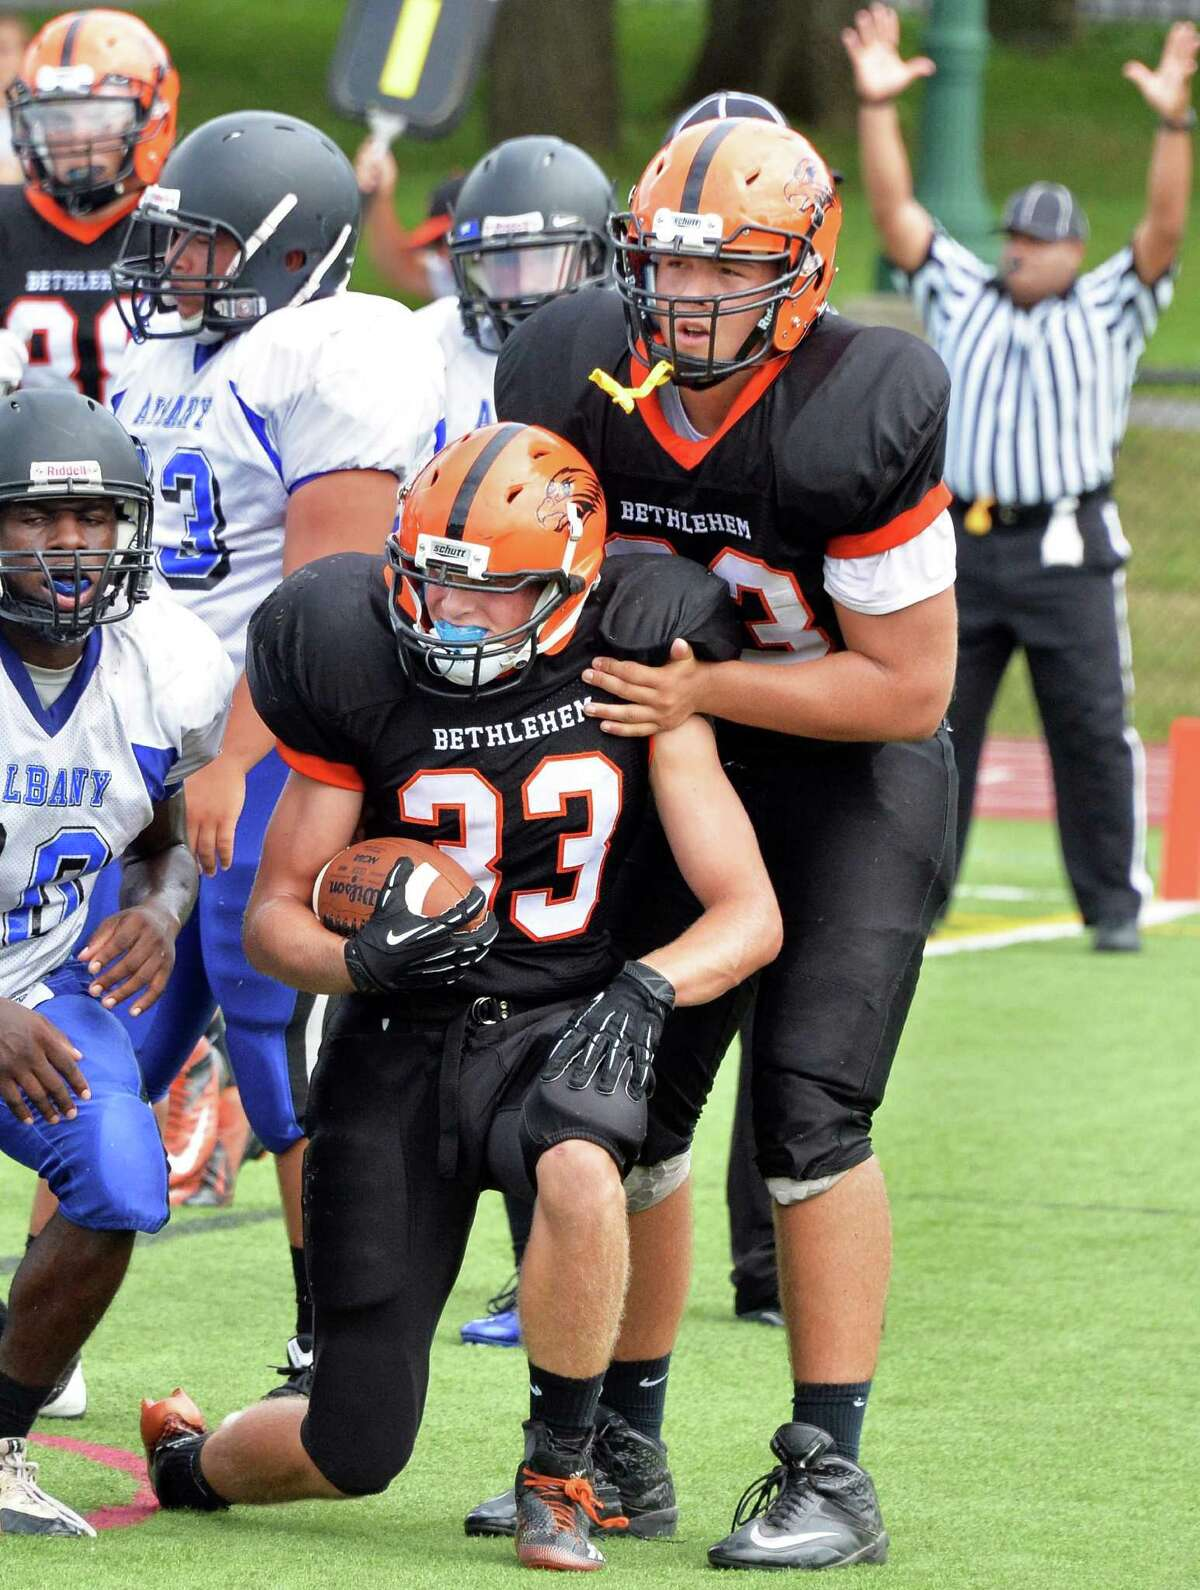 Bethlehem's #33 Ben Tietjen, center, in congratulated by team mate #73 Hong Fe Huang after his touchdown during Saturday's game against Albany High Sept. 6, 2014, at Union College's Frank Bailey Field in Schenectady,NY. (John Carl D'Annibale / Times Union)